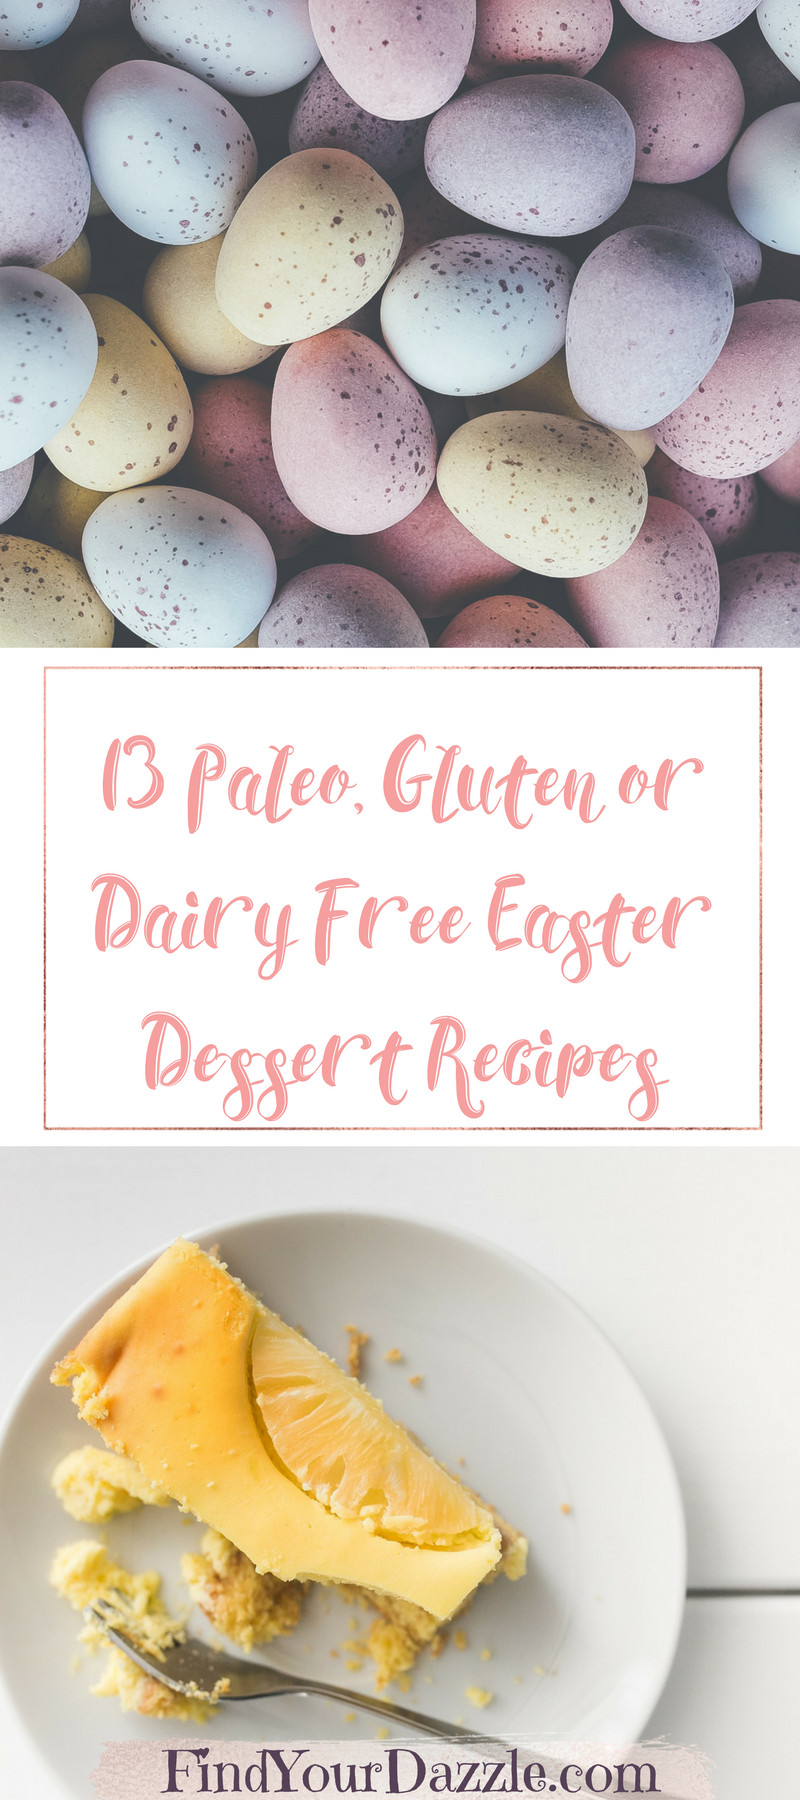 Gluten Free Dairy Free Desserts To Buy  13 Paleo Gluten or Dairy Free Easter Dessert Recipes